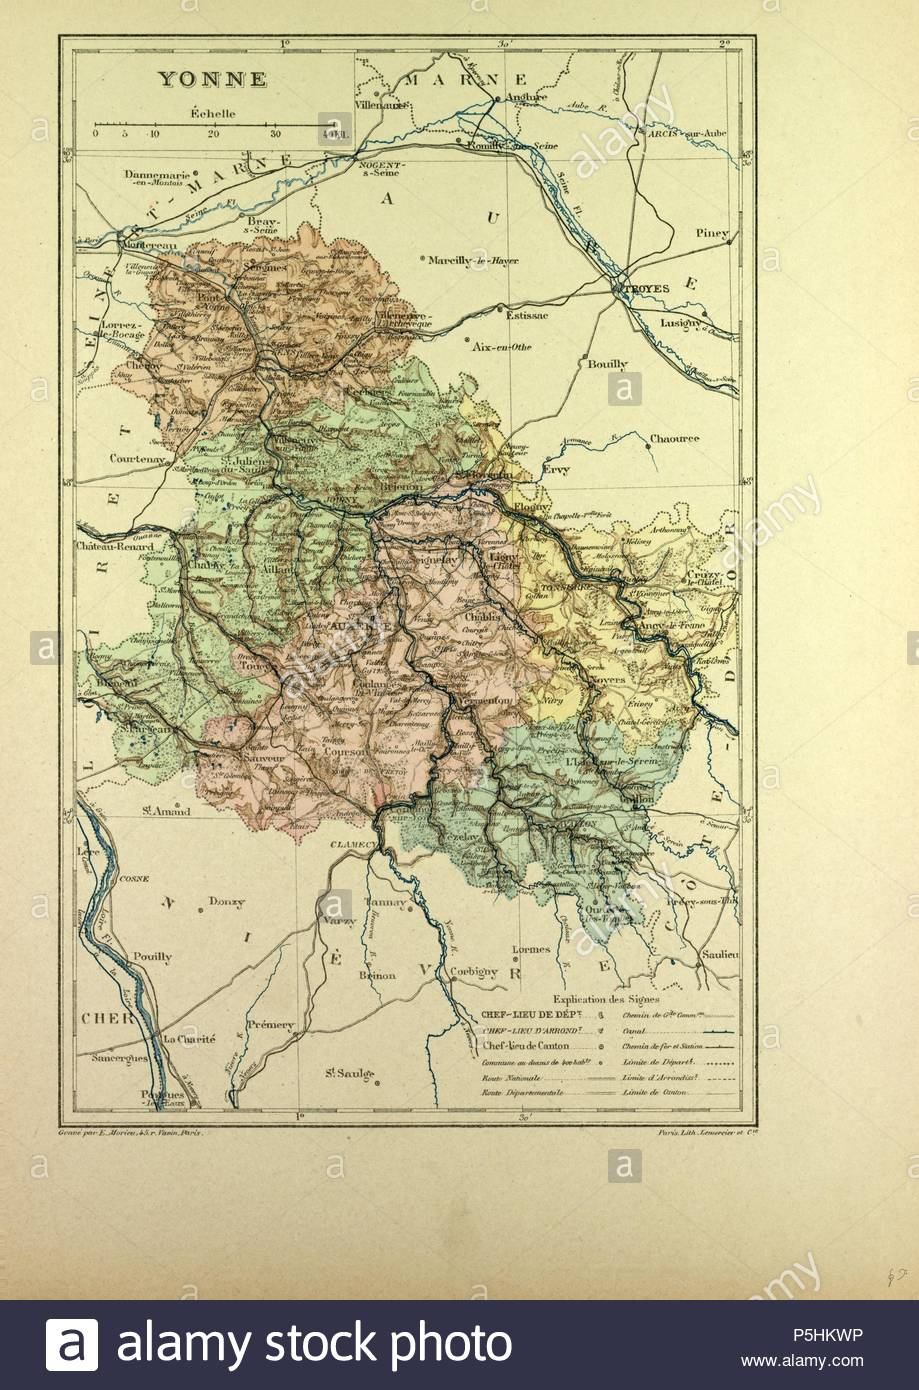 Map Of Yonne France.Map Of Yonne France Stock Photo 209986498 Alamy